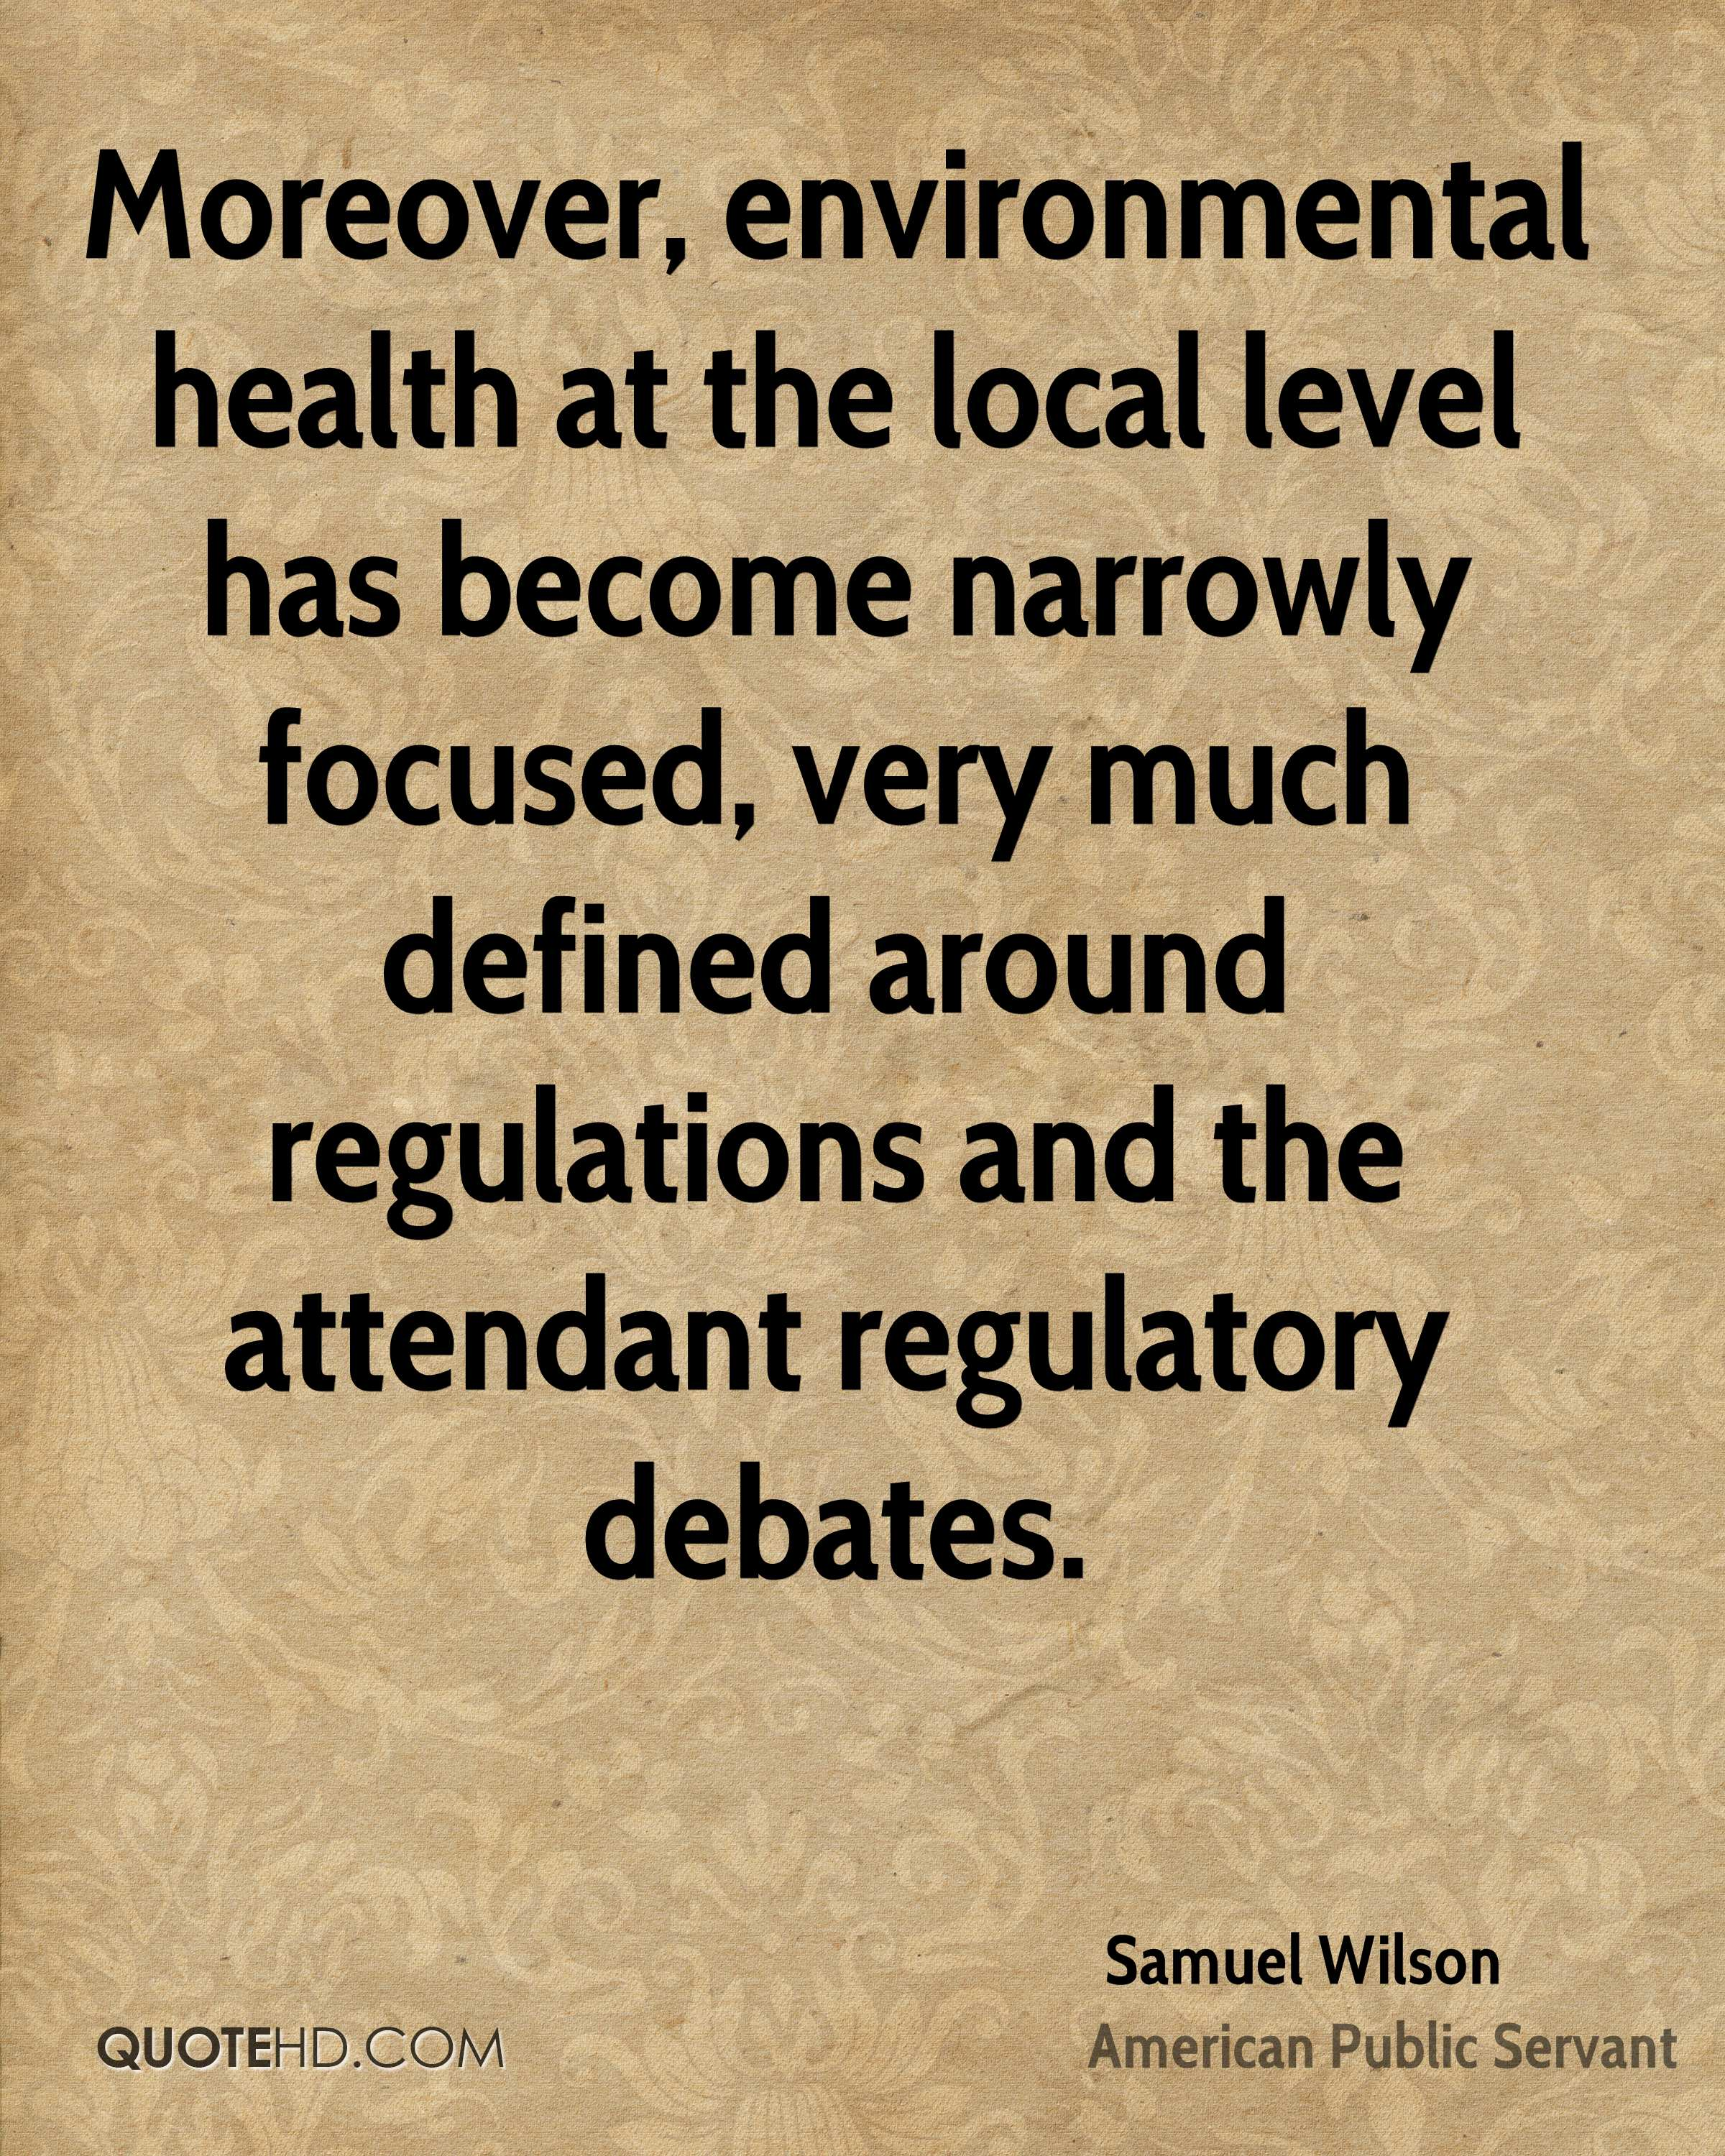 Moreover, environmental health at the local level has become narrowly focused, very much defined around regulations and the attendant regulatory debates.